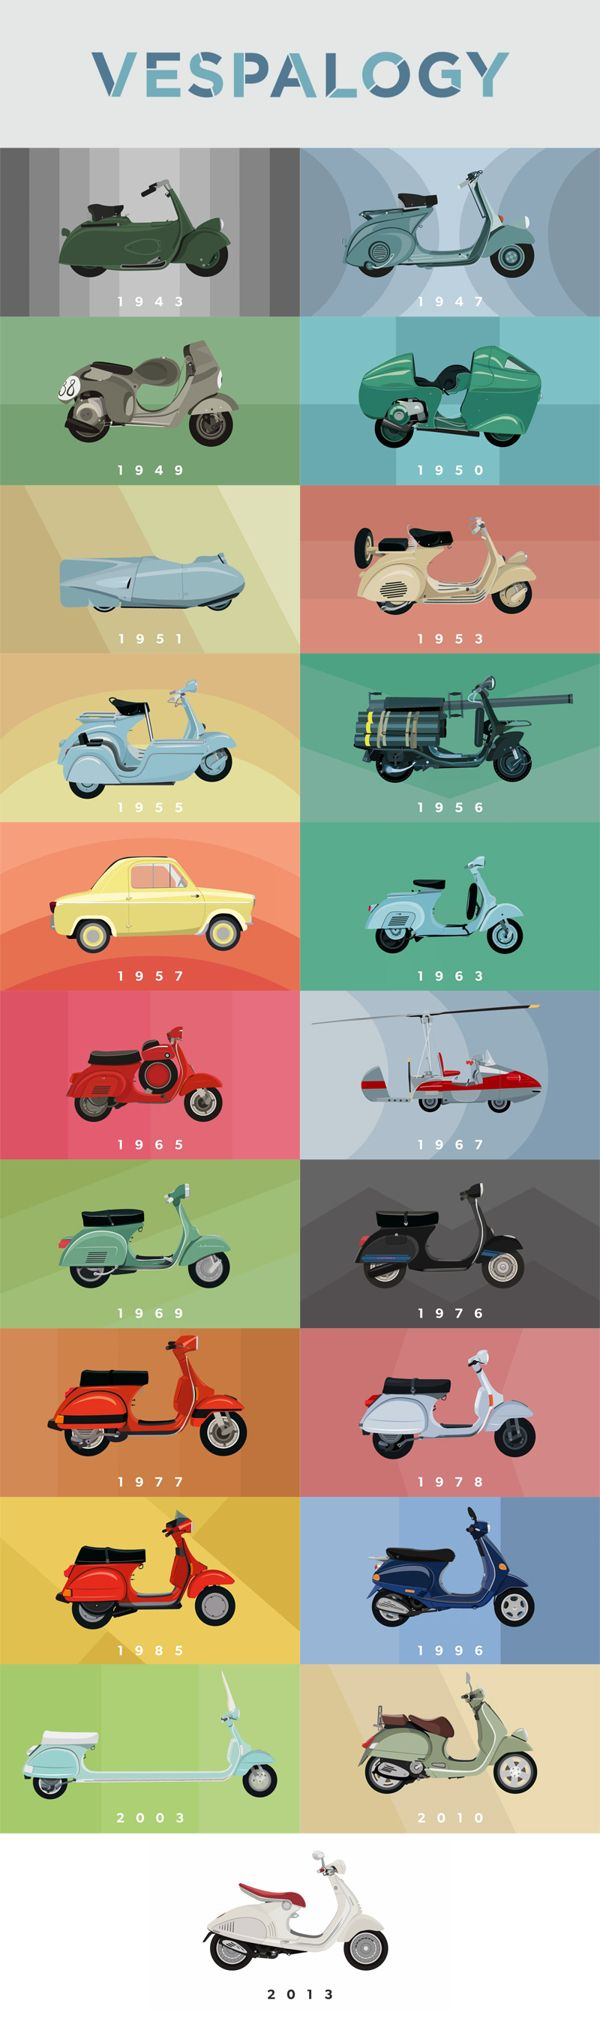 Vespalogy by Guillaume Kurkdjian, via Behance #info #illustration #vespa